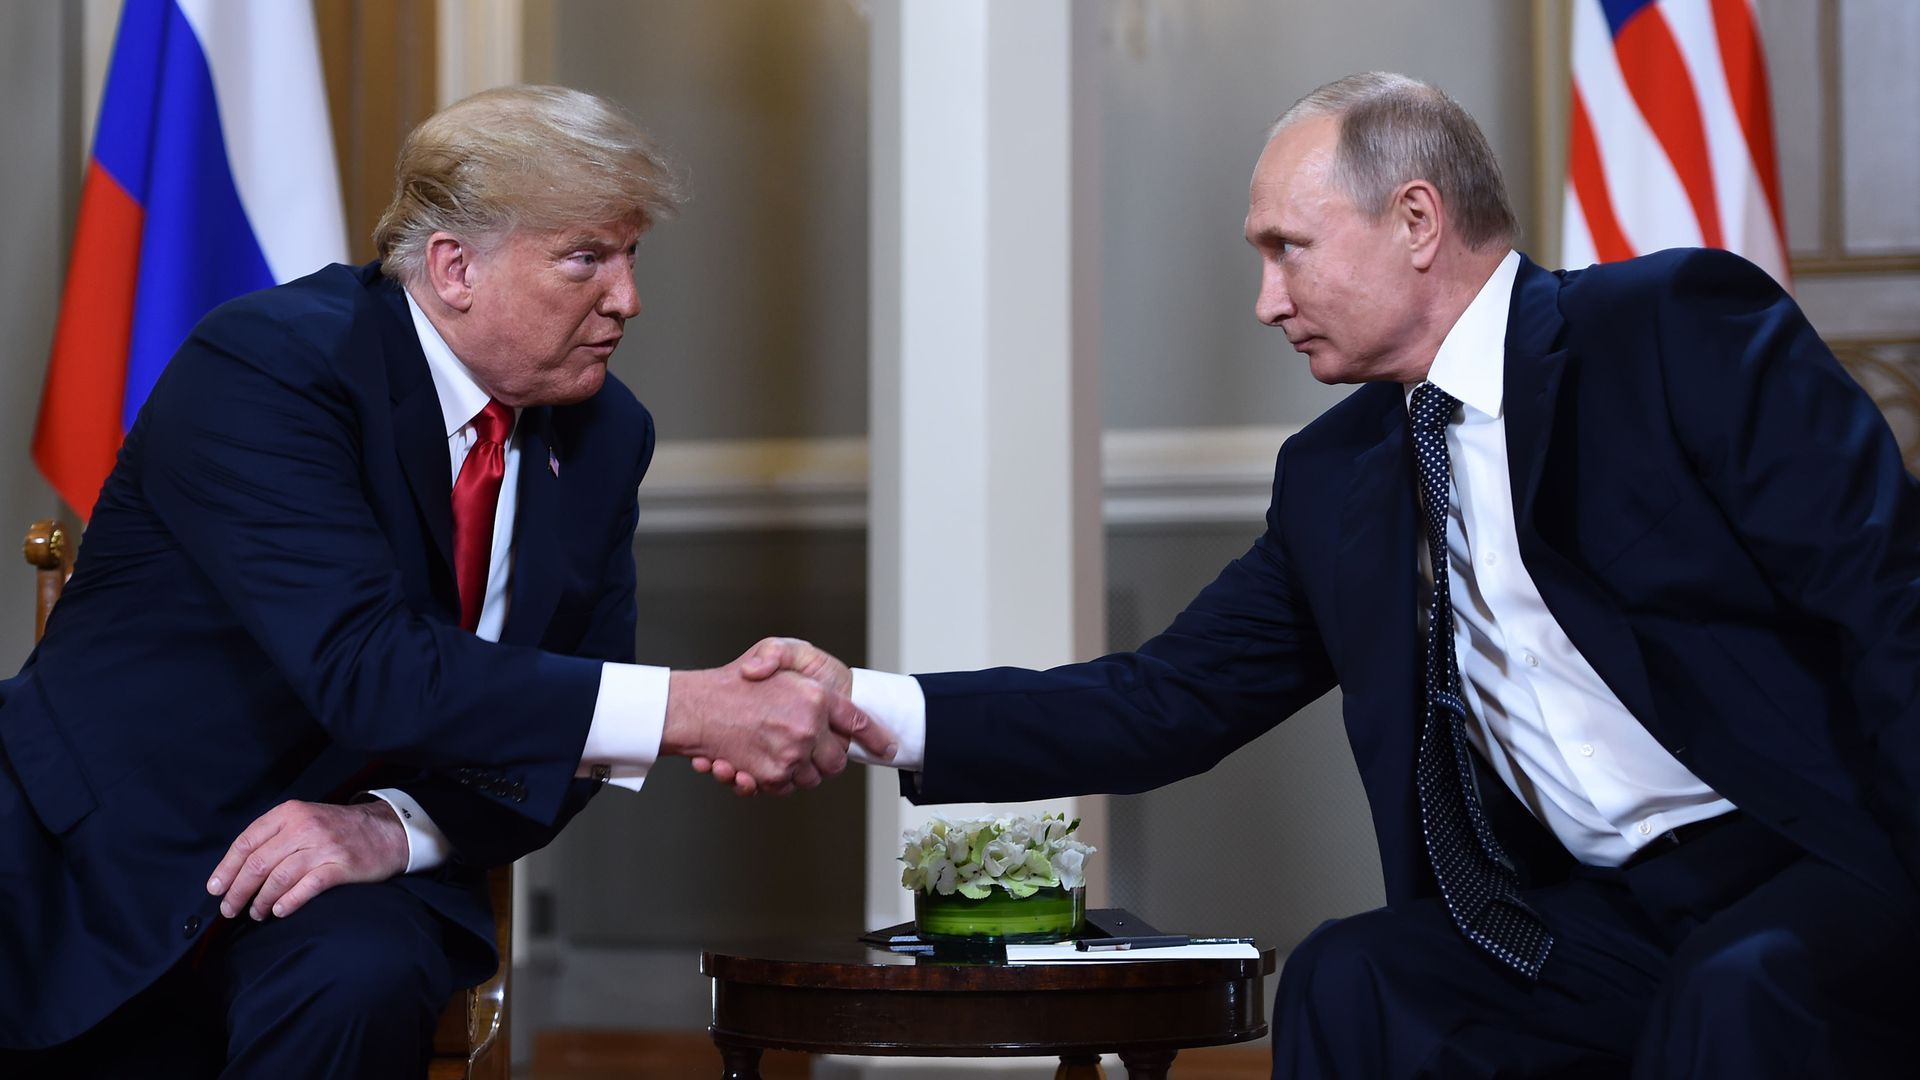 Donald Trump and Vladimir Putin shake hands.